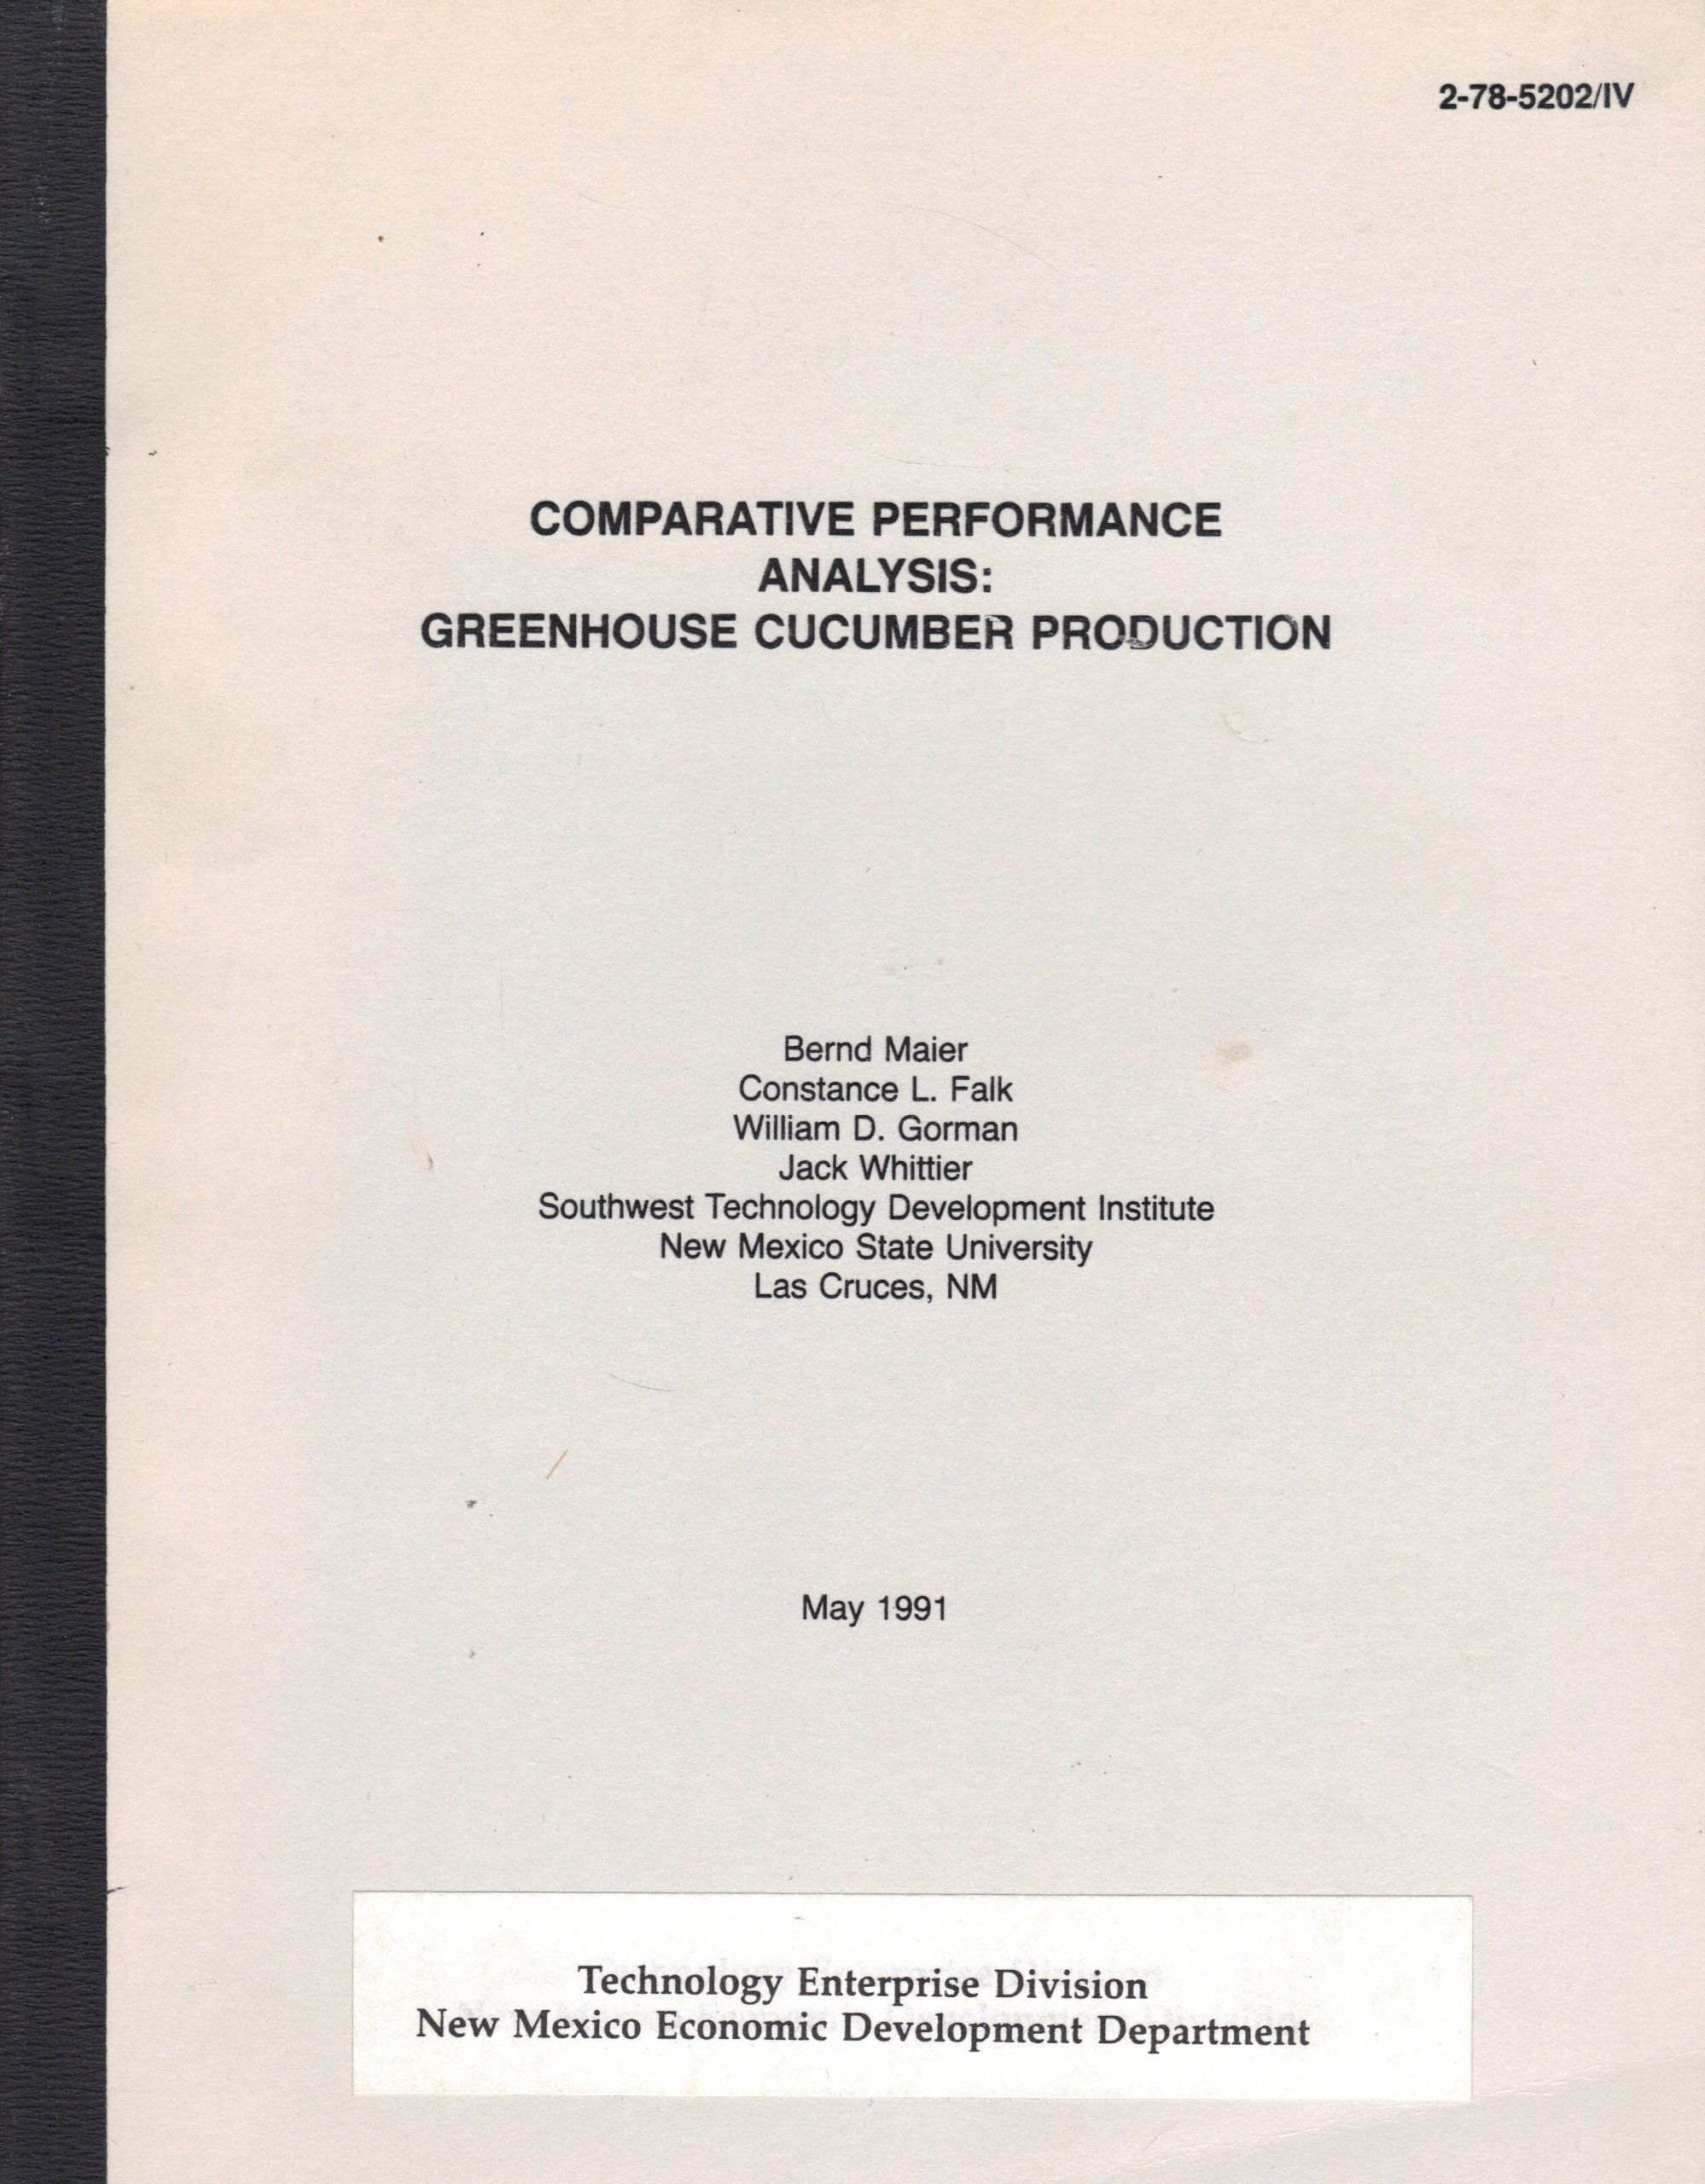 comparative-performance-analysis-greenhouse-cucumber-production-may-1991-2-78-5202-iv